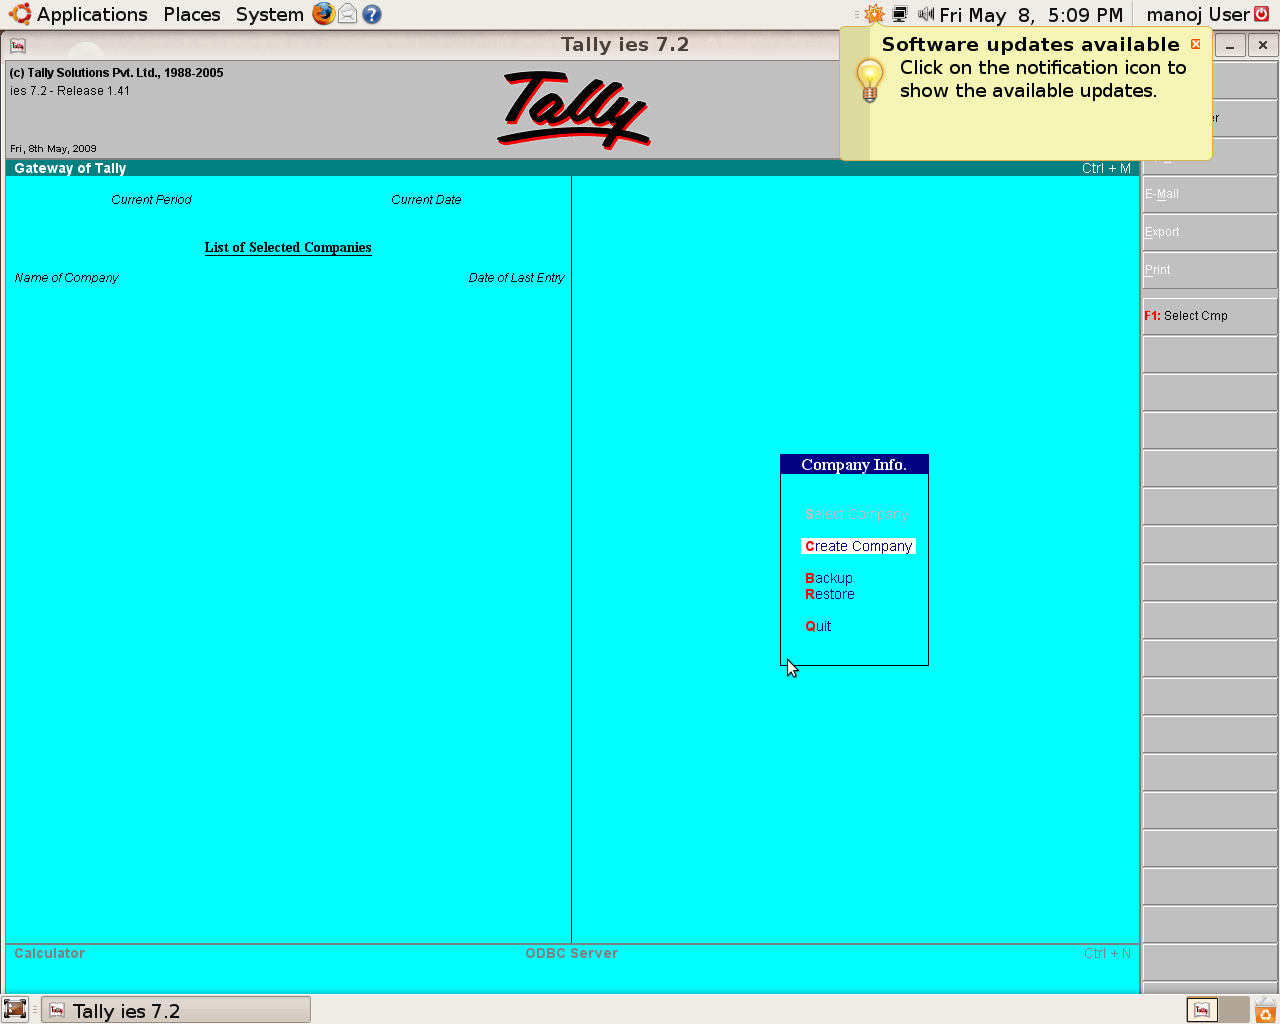 tally 7.2 software download